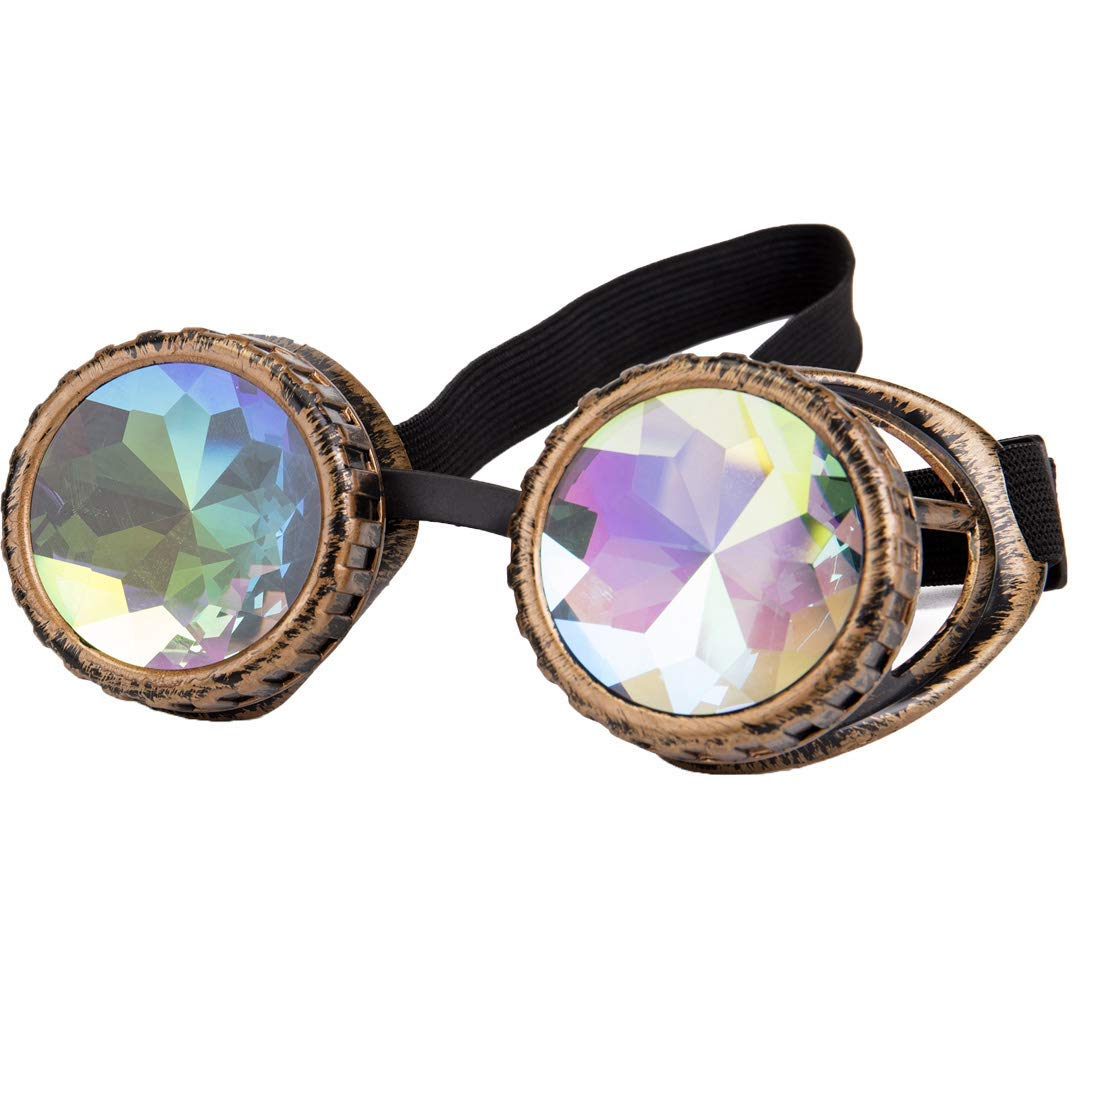 Kaleidoscope Rainbow Best Rave Glasses Prism Refraction Goggles for Festivals